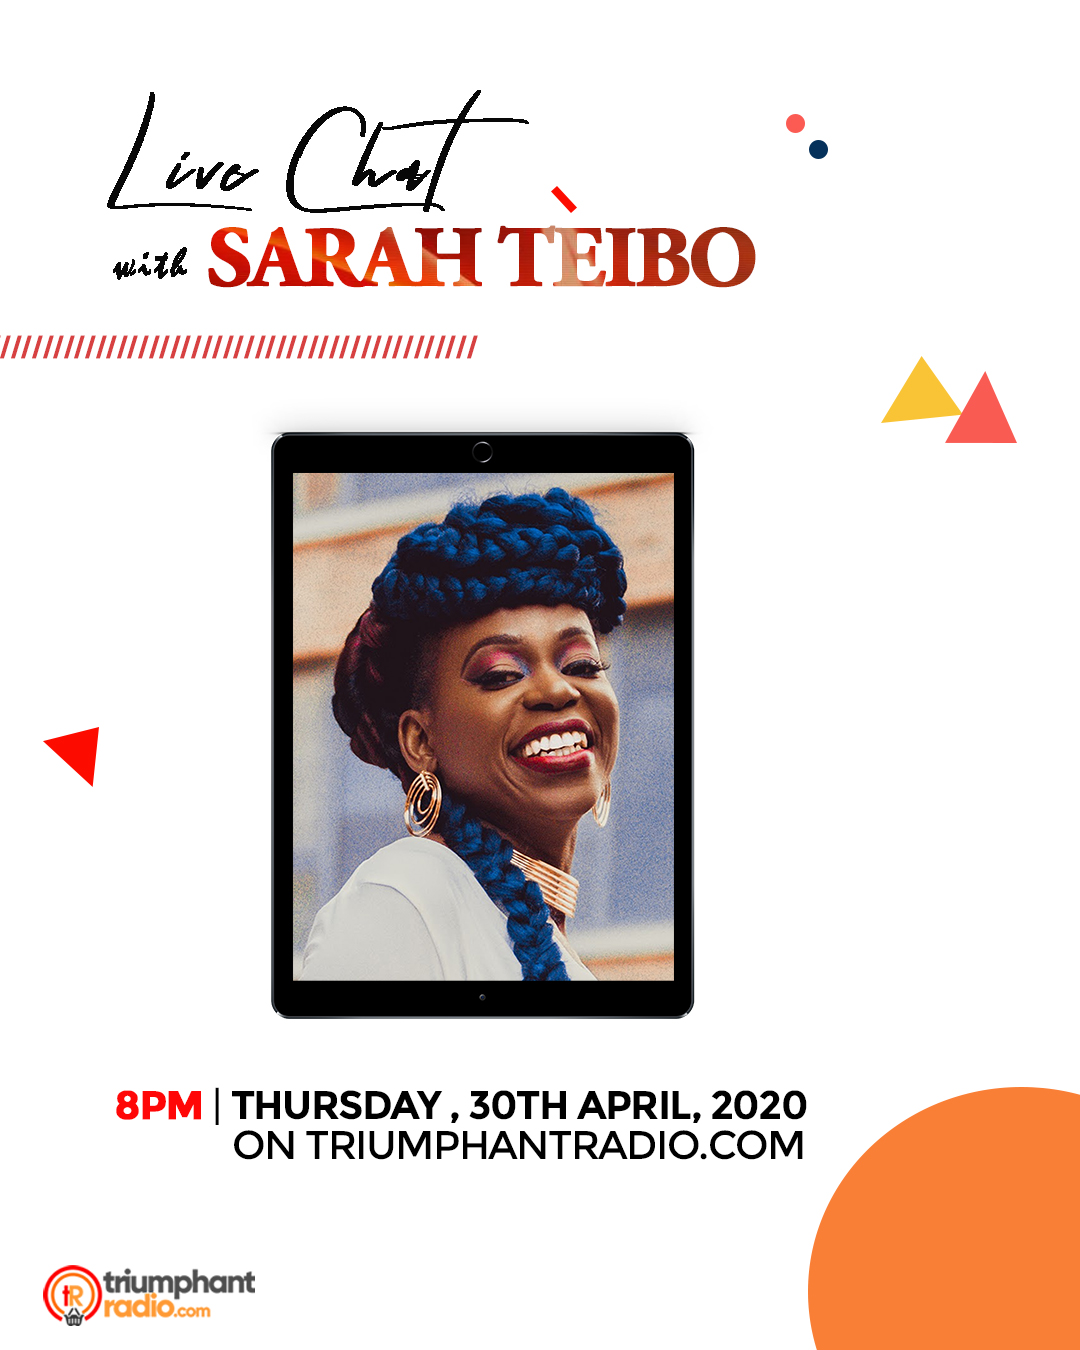 Live Chat with Sarah Teibo